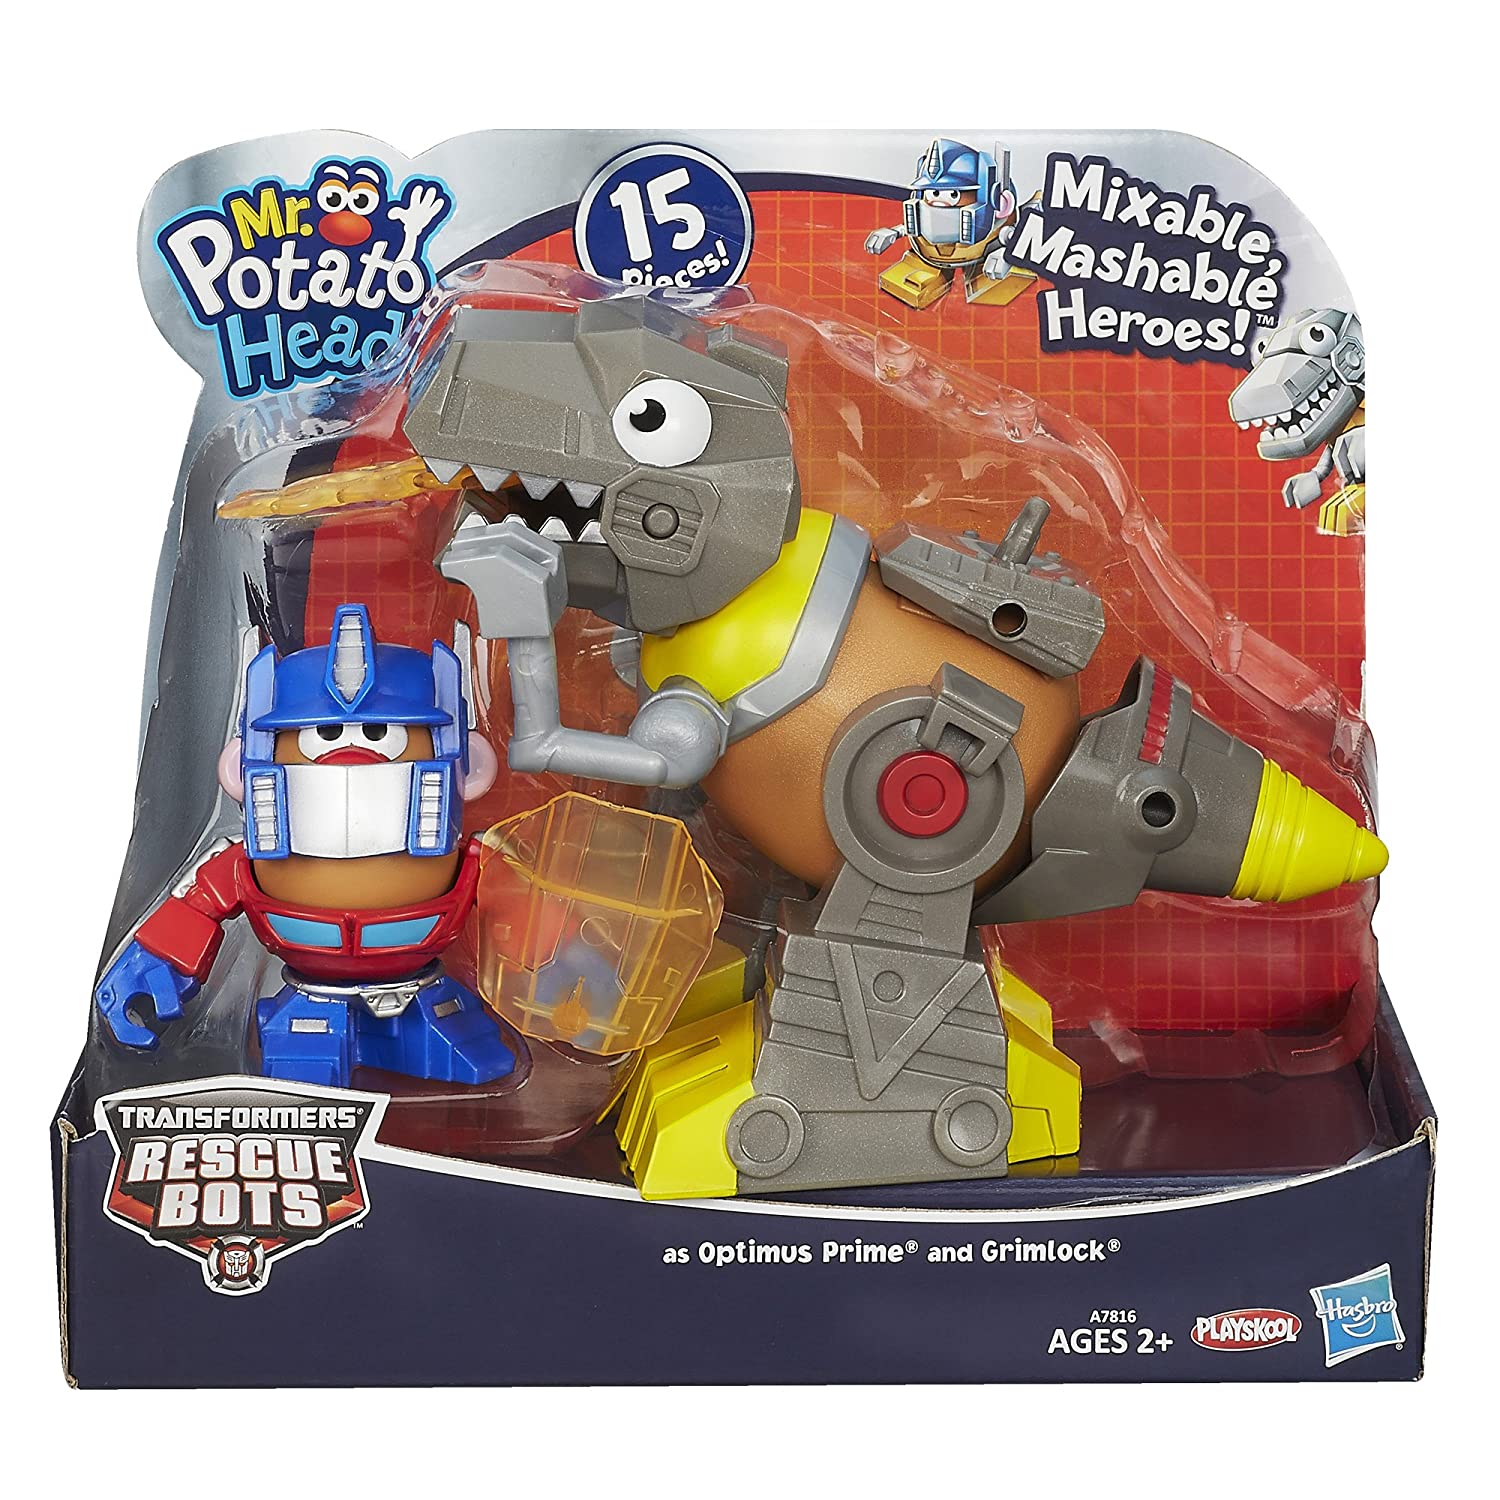 Playskool Mr. Potato Head Transformers Mixable Mashable Heroes as Optimus Prime and Grimlock Figures, 2-Inch